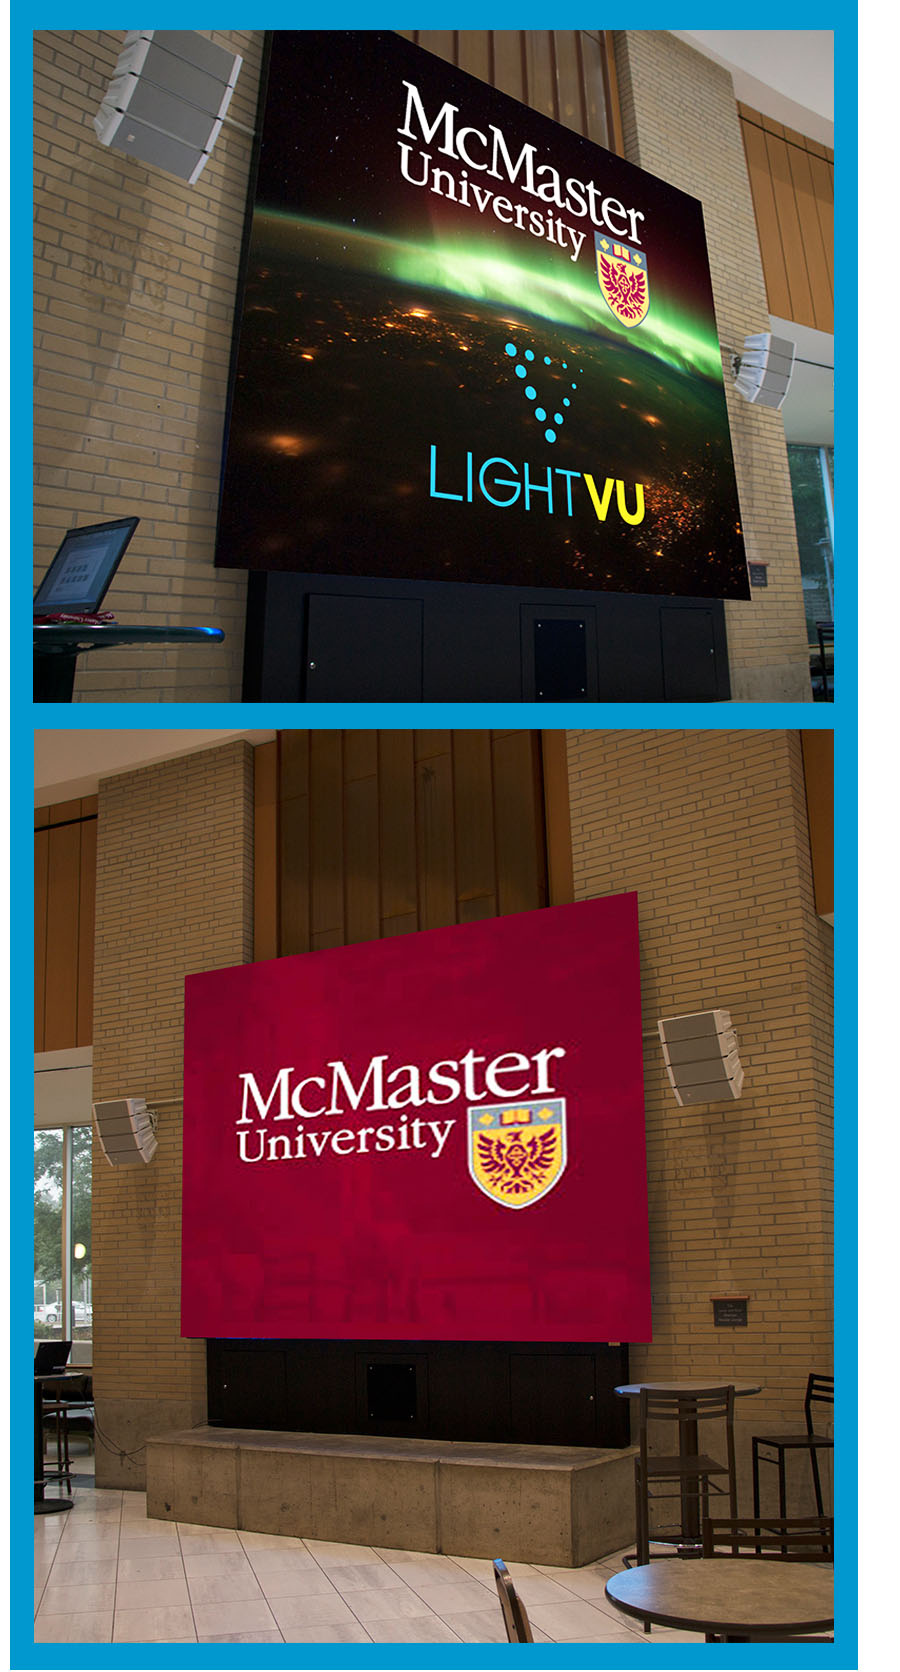 McMaster_University_LED Display_Canada_Aurora_LIGHTVU